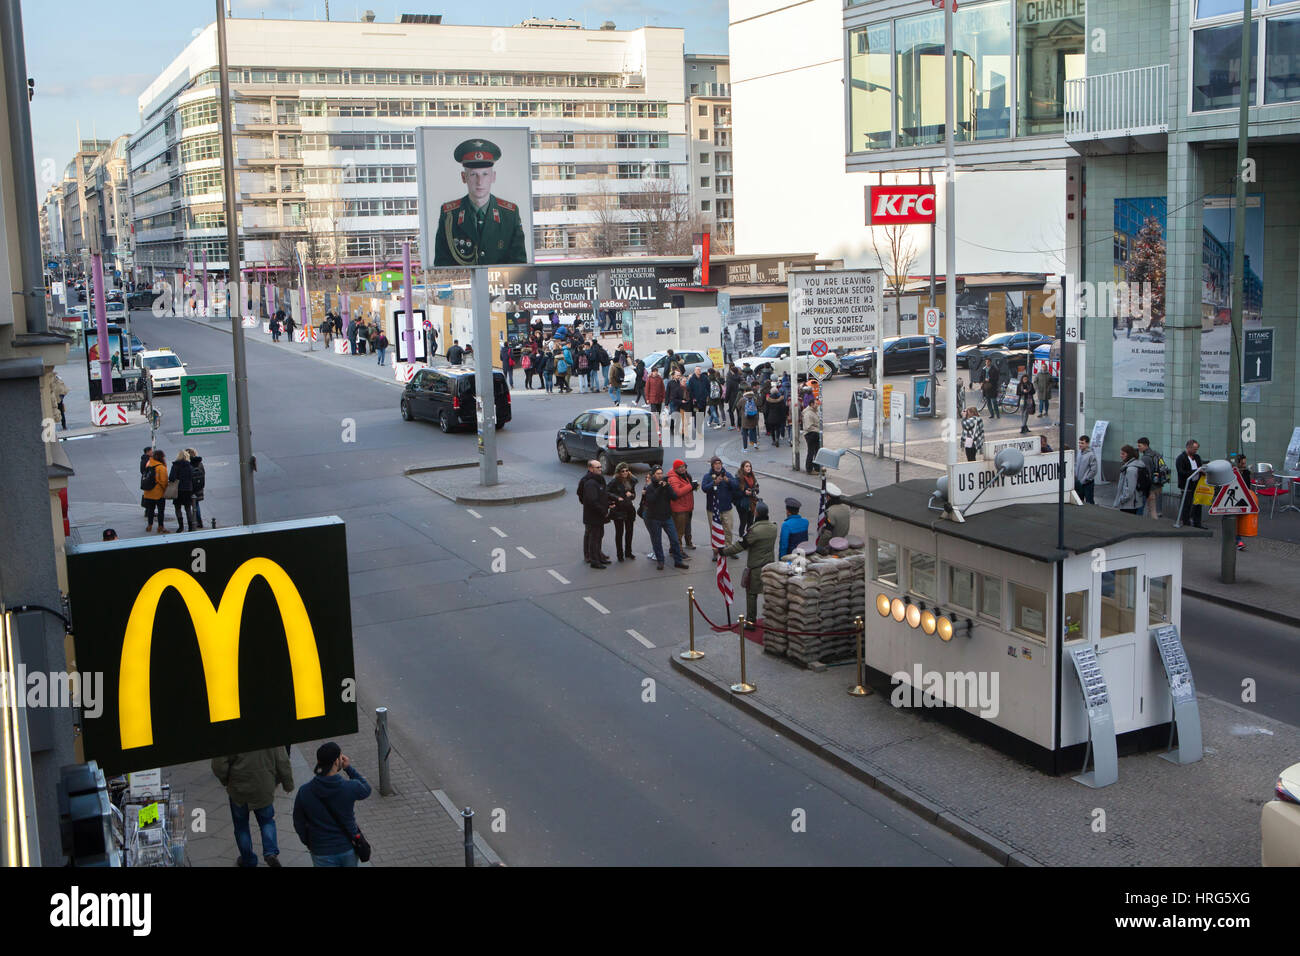 Checkpoint Charlie in Berlin, Germany Stock Photo: 134965560